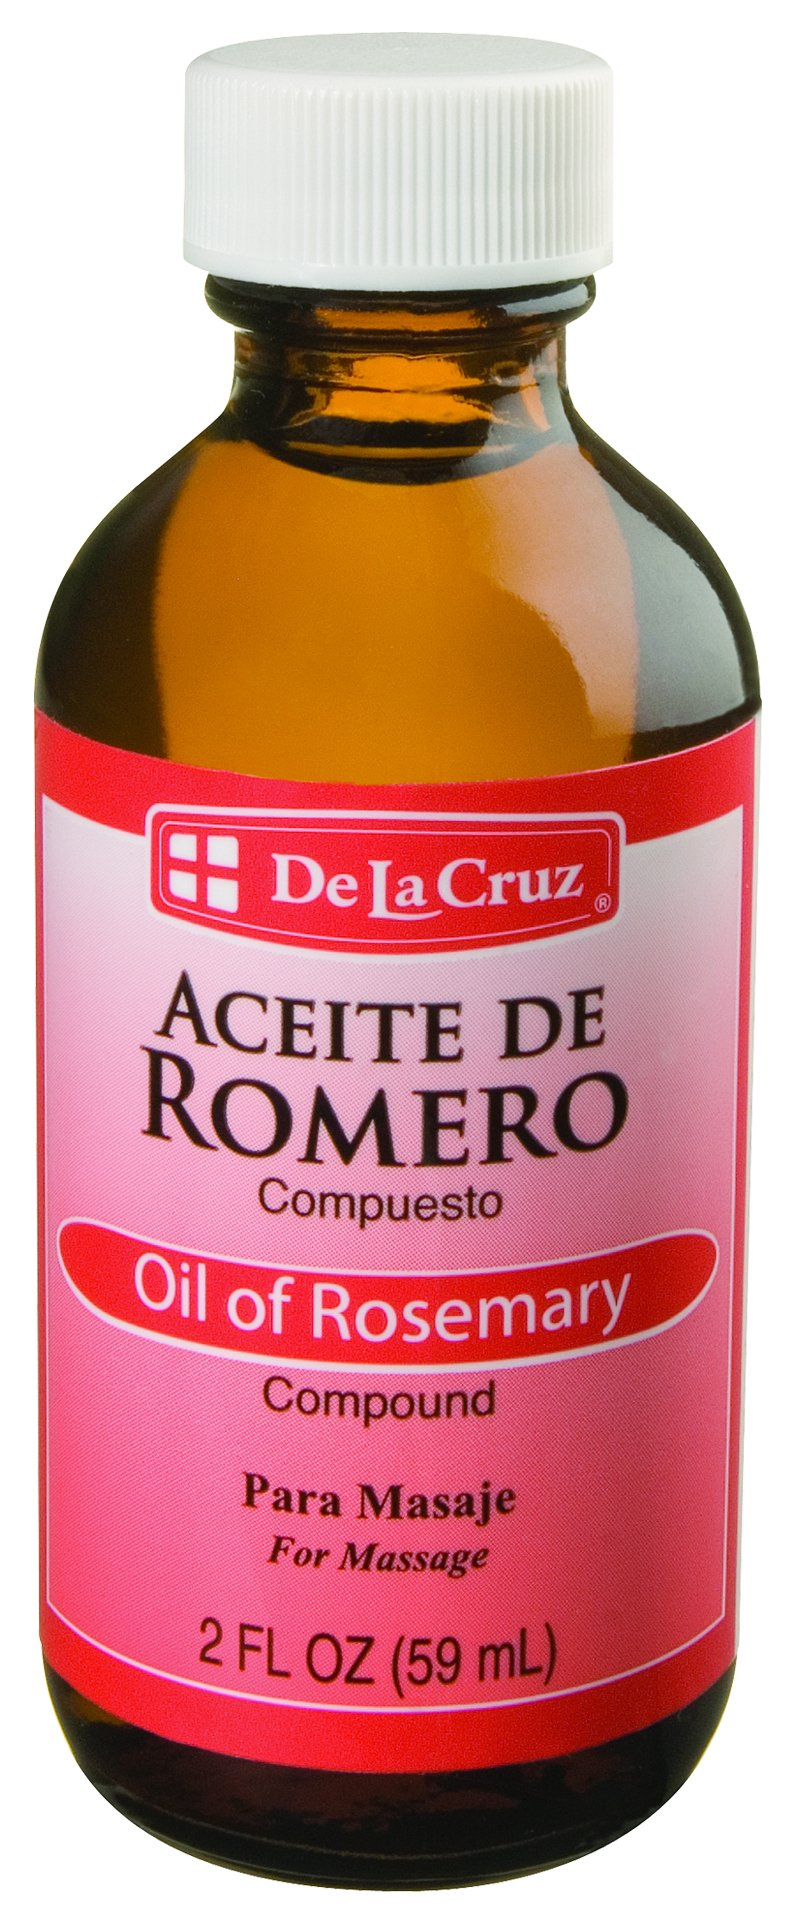 De La Cruz Oil of Rosemary Compound for Skin and Hair, No Preservatives, Artificial